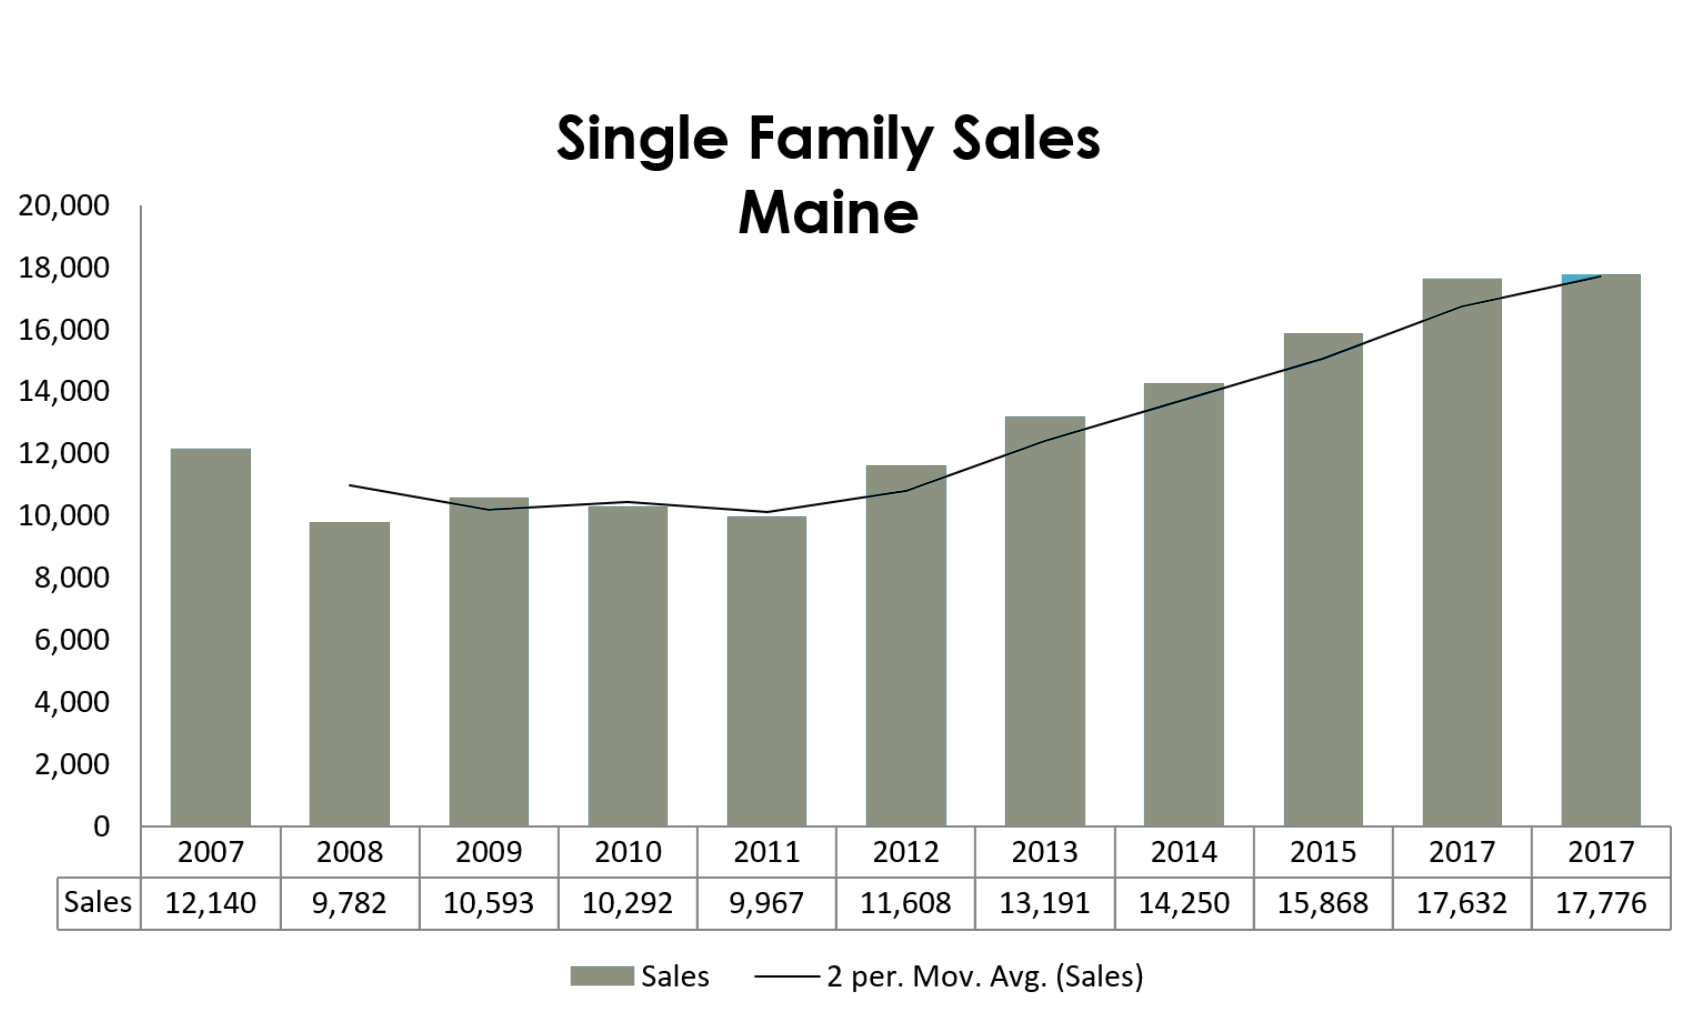 single family sales maine 2017.png